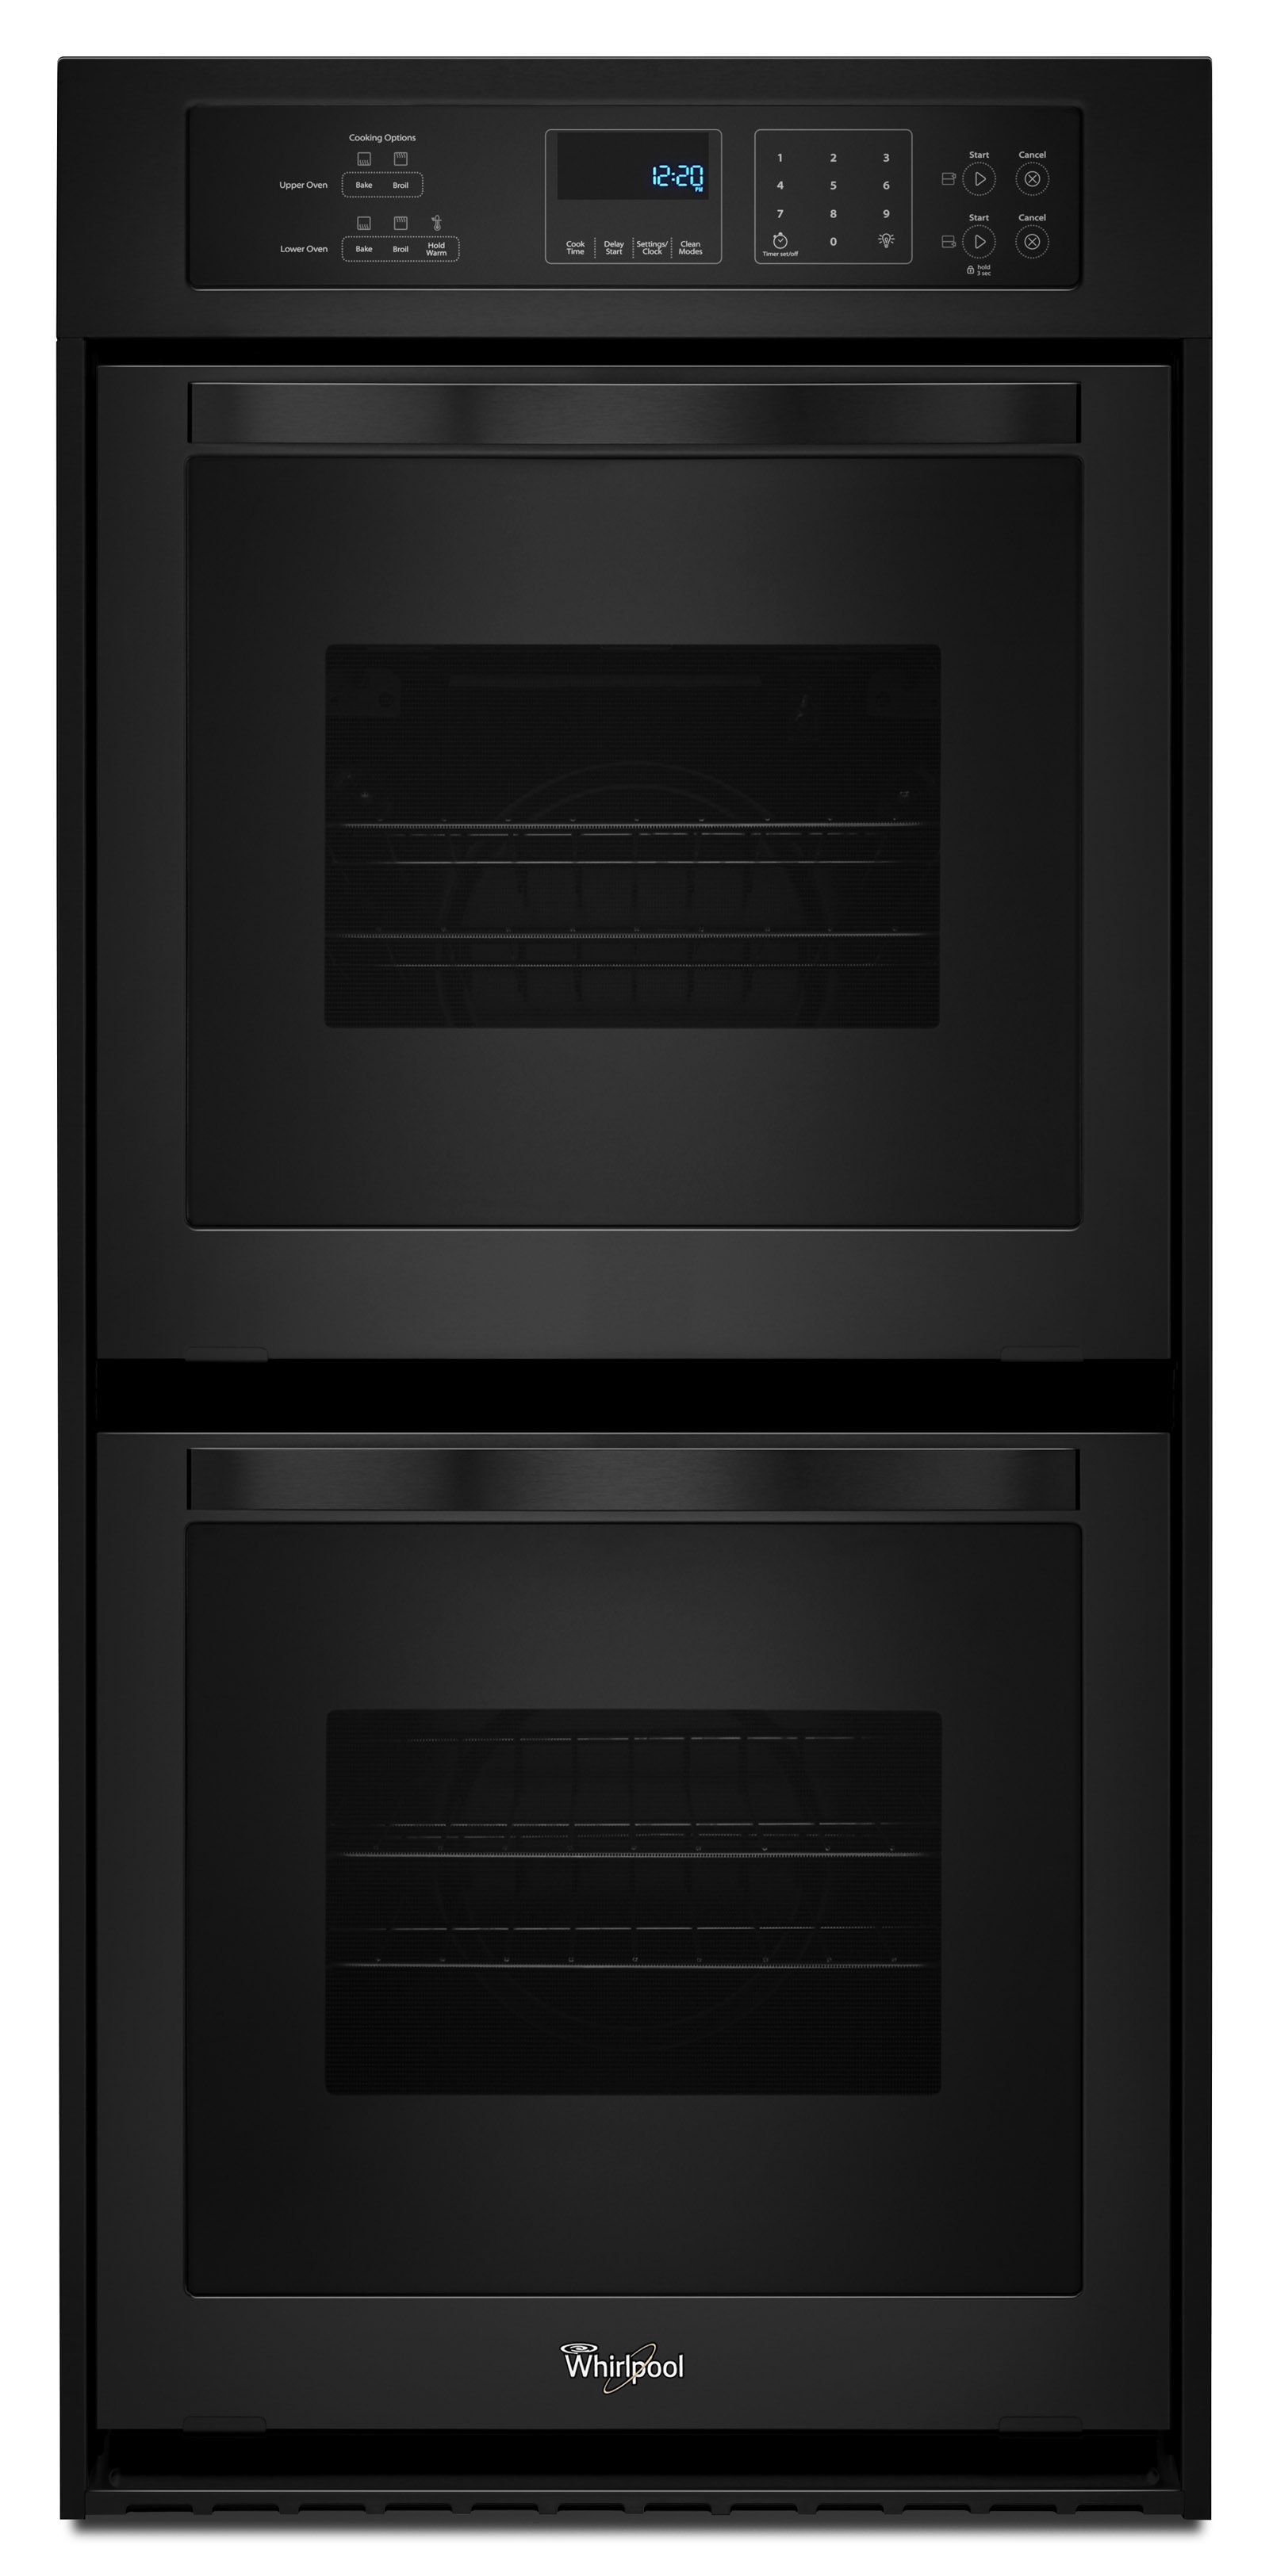 "Whirlpool Oven Symbolen Whirlpool Wod51es4eb 24"" Double Wall Oven - Black"